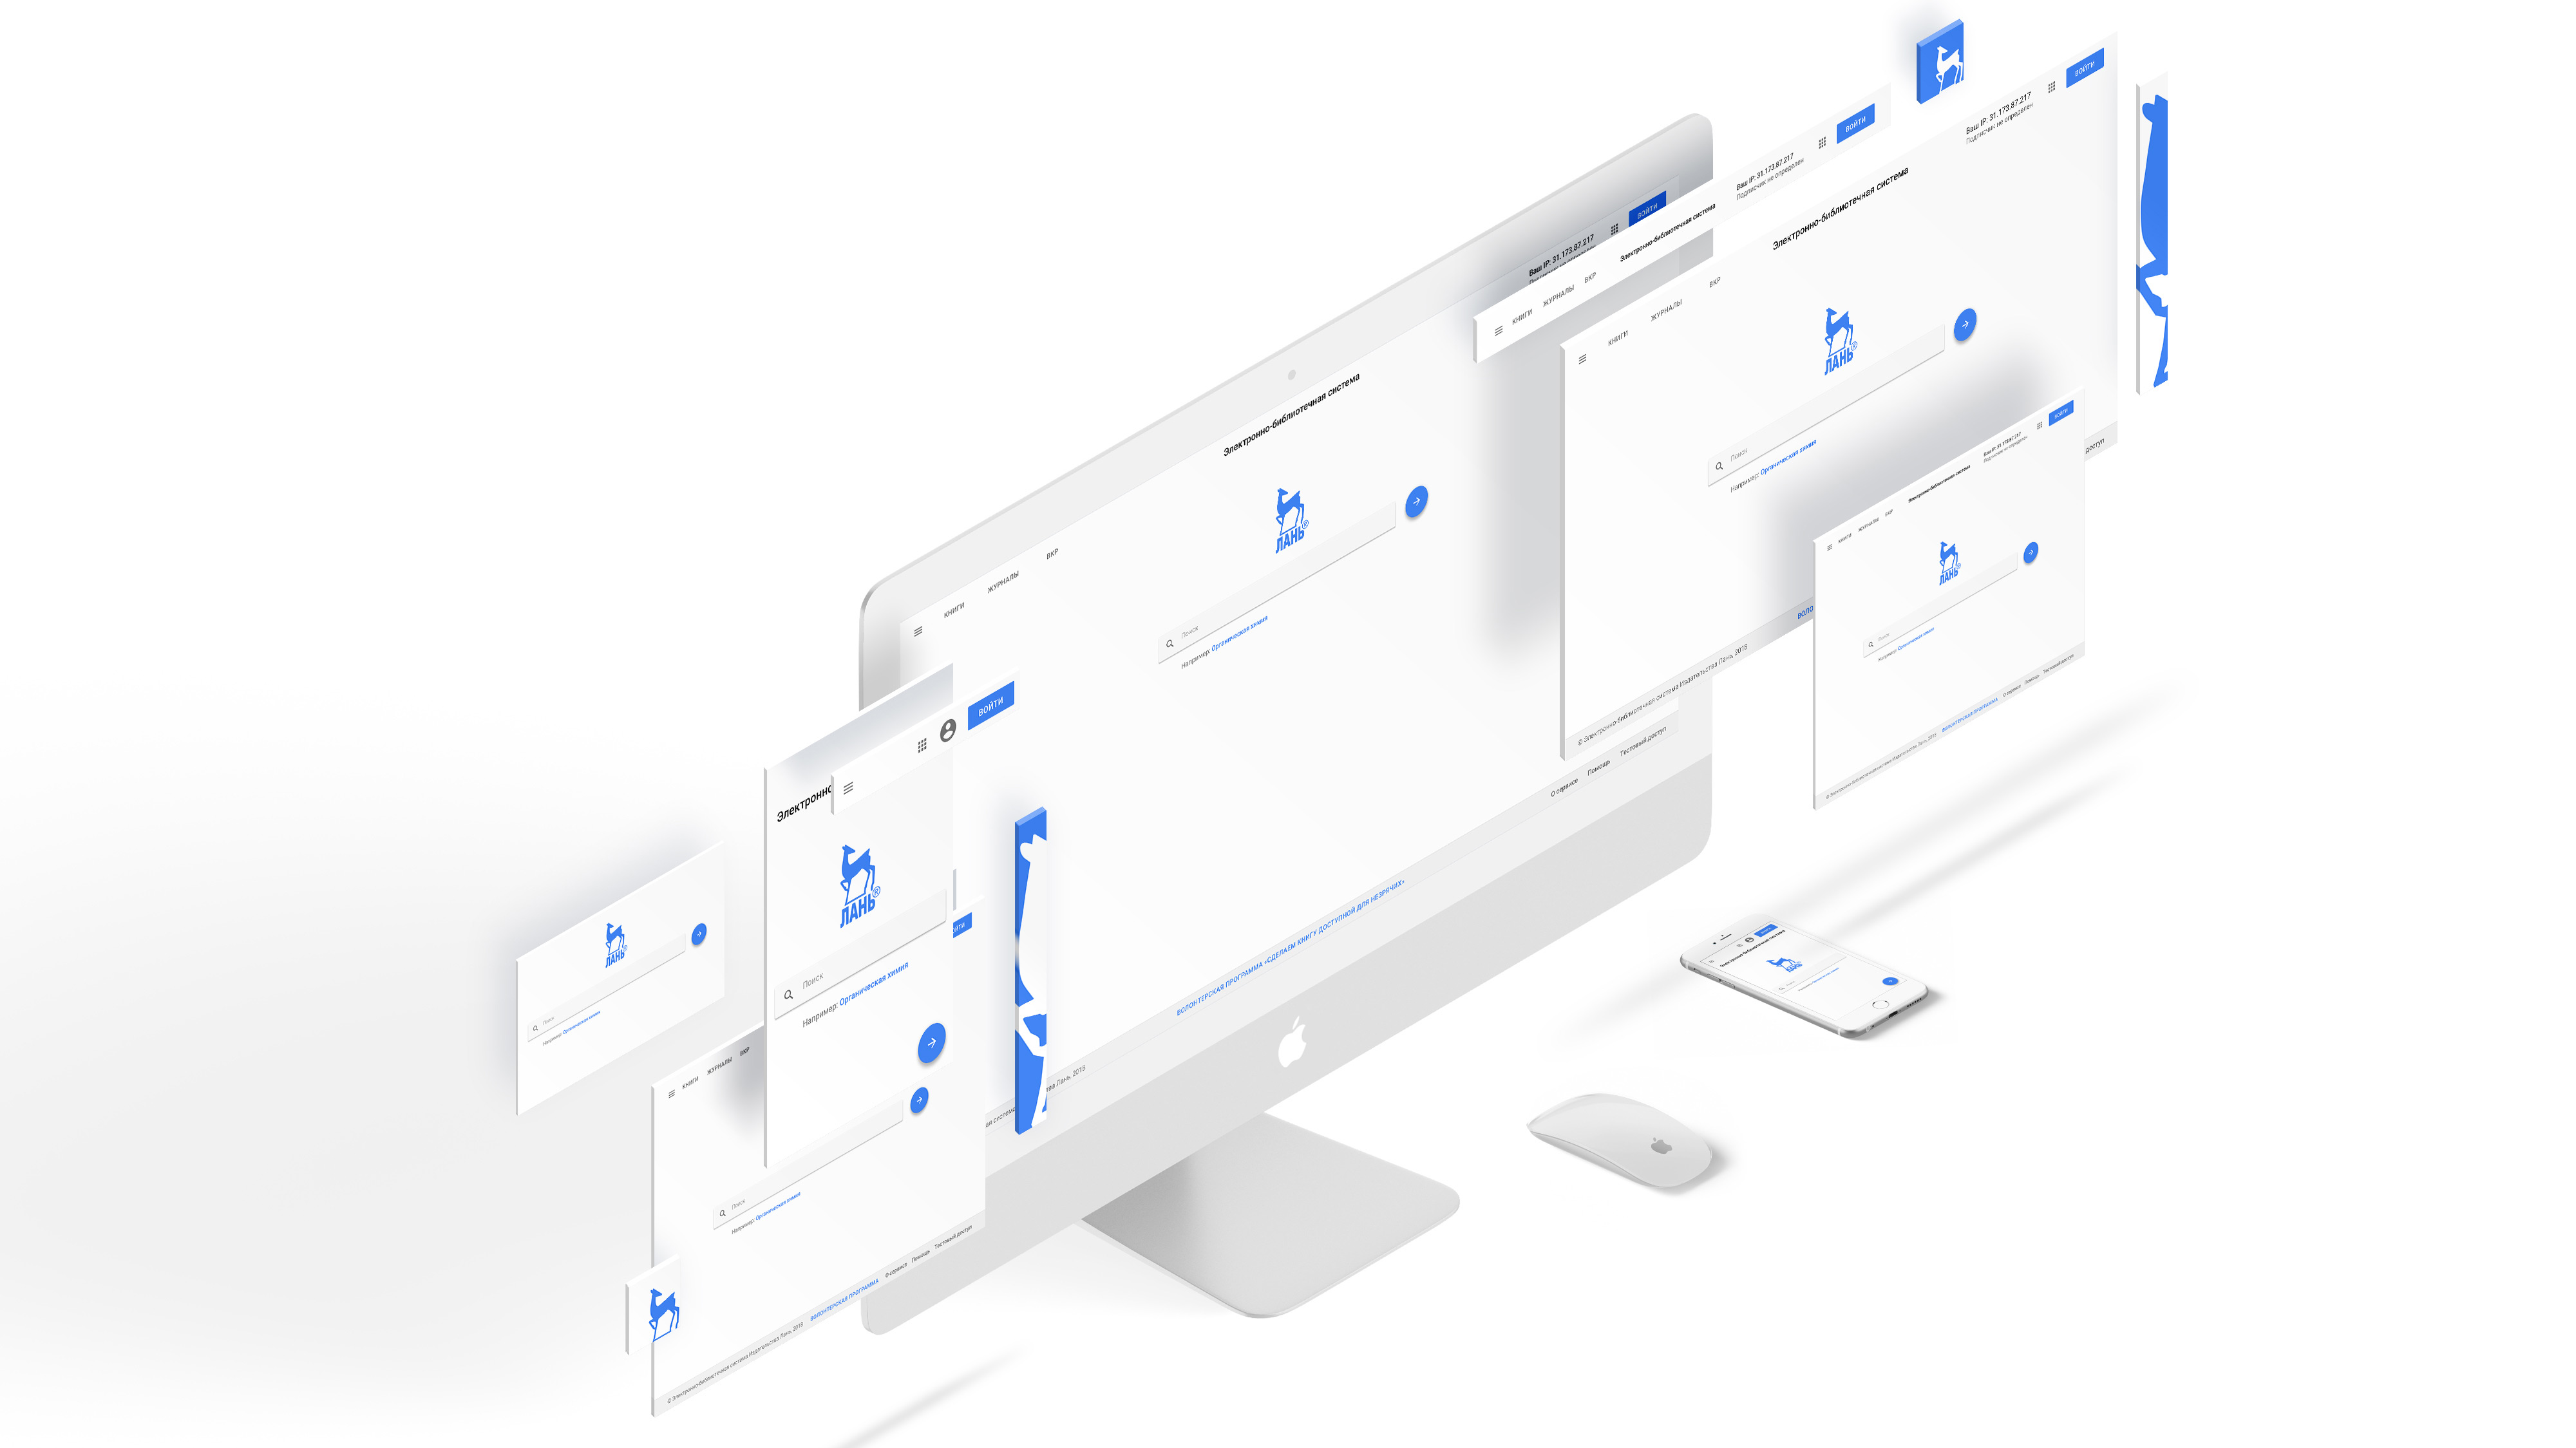 Material Design of Online Library